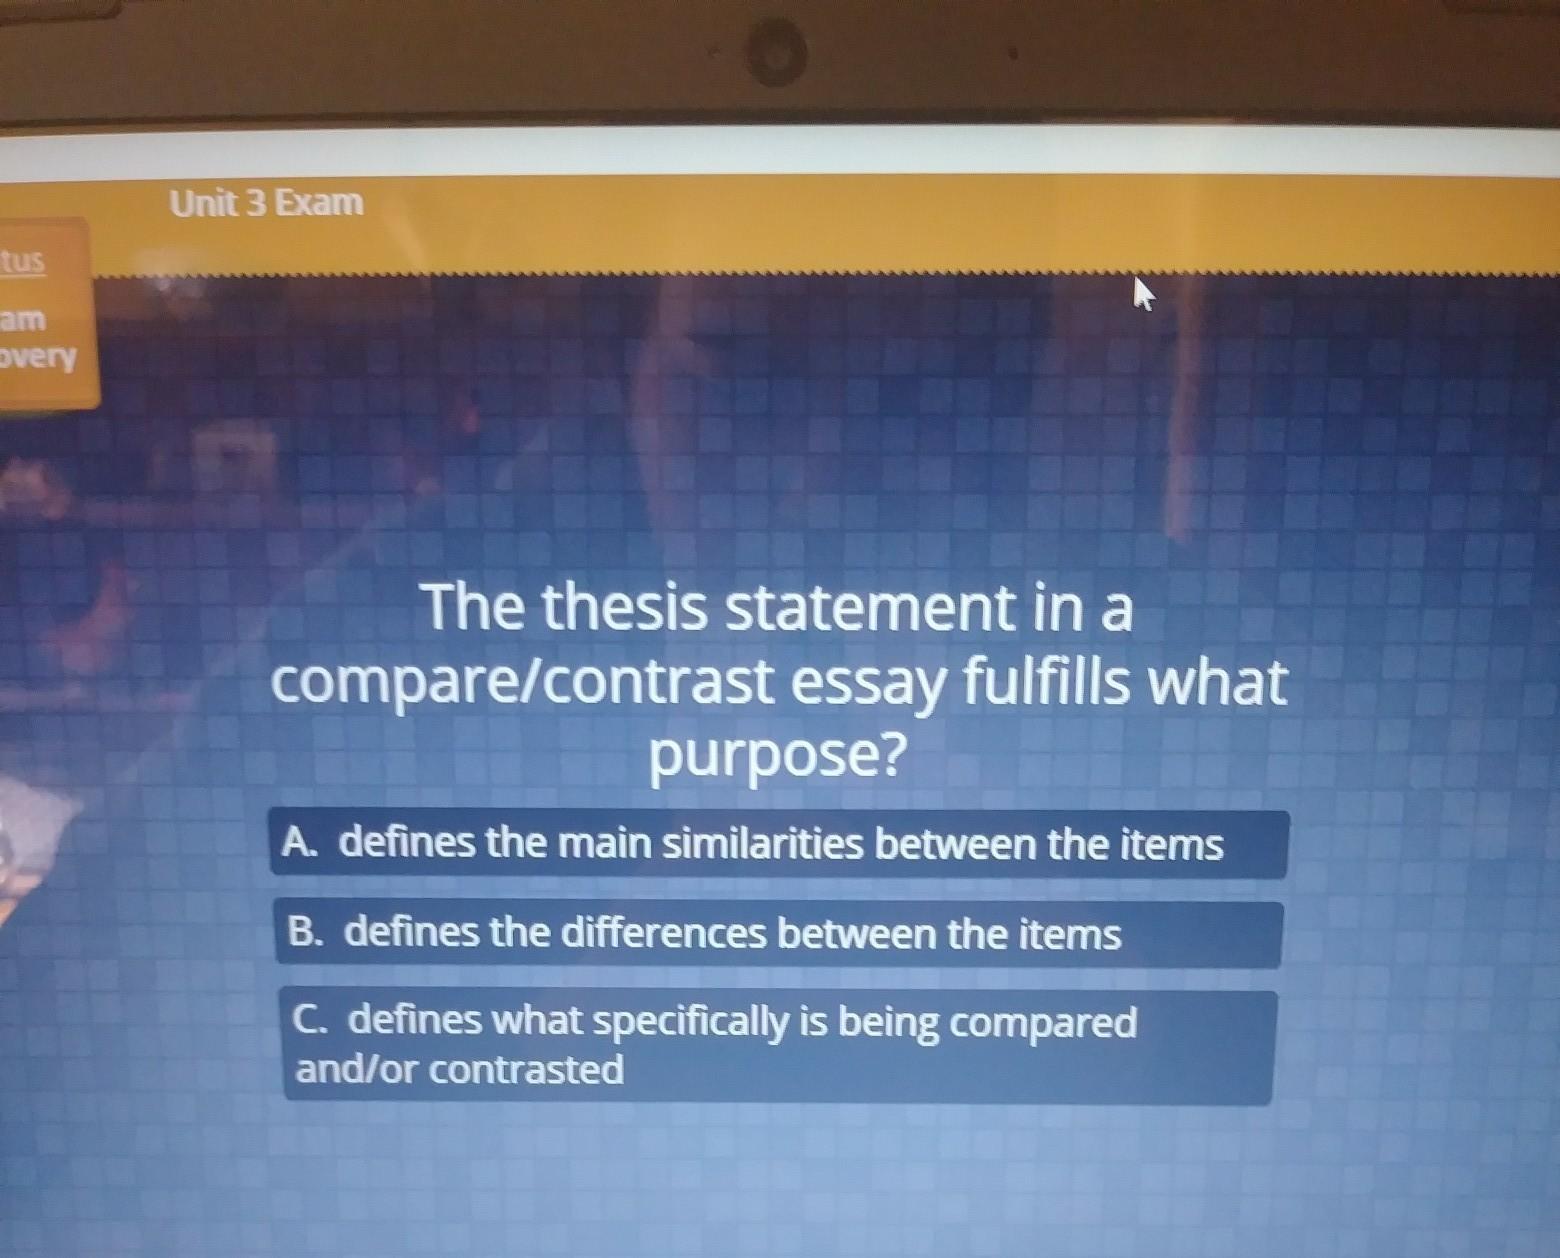 the thesis statement in a comparecontrast essay fulfills what  the thesis statement in a comparecontrast essay fulfills what purpose   brainlycom